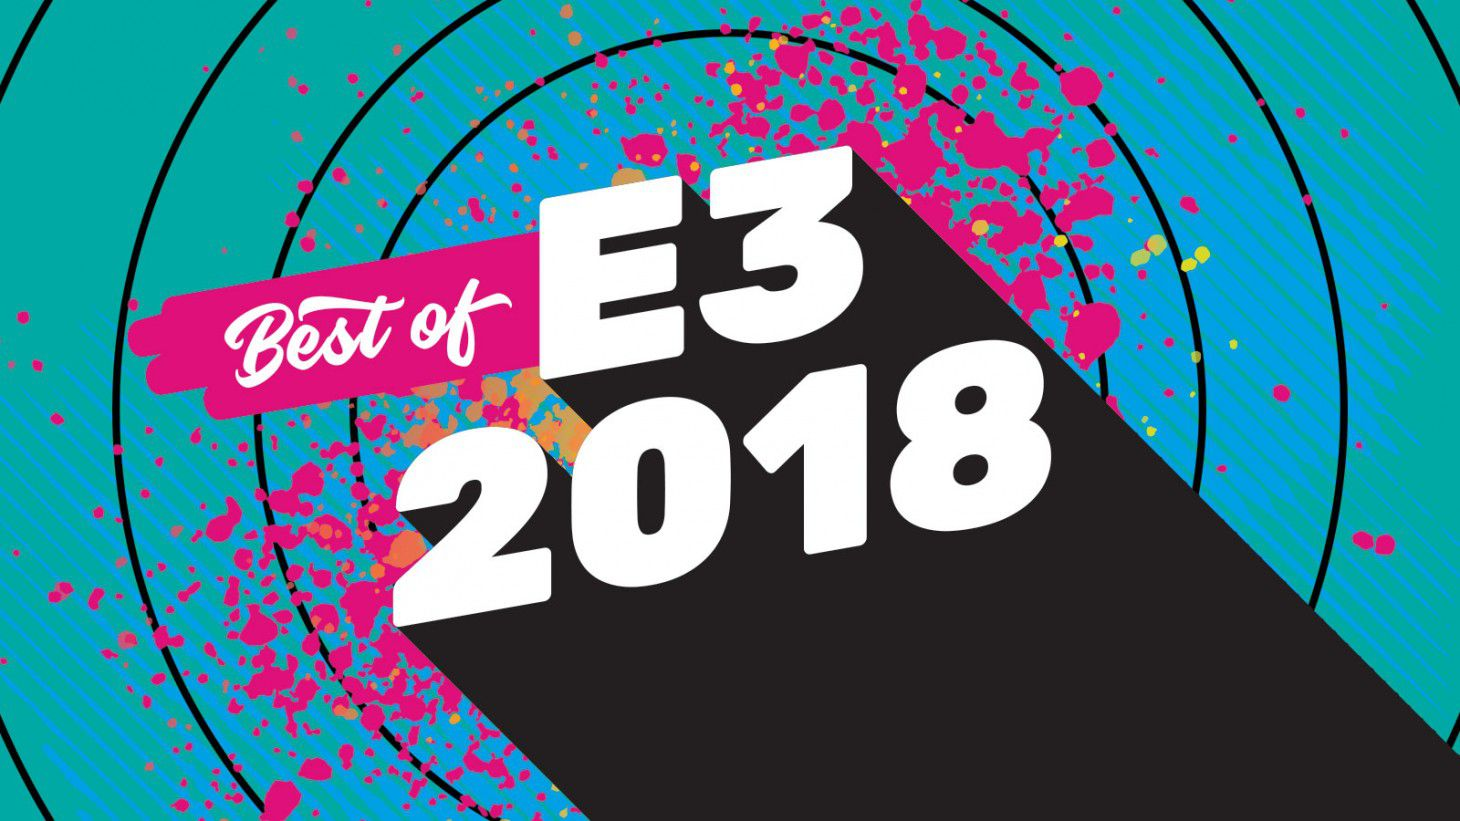 Game Critics Awards 2018 - Best Of E3